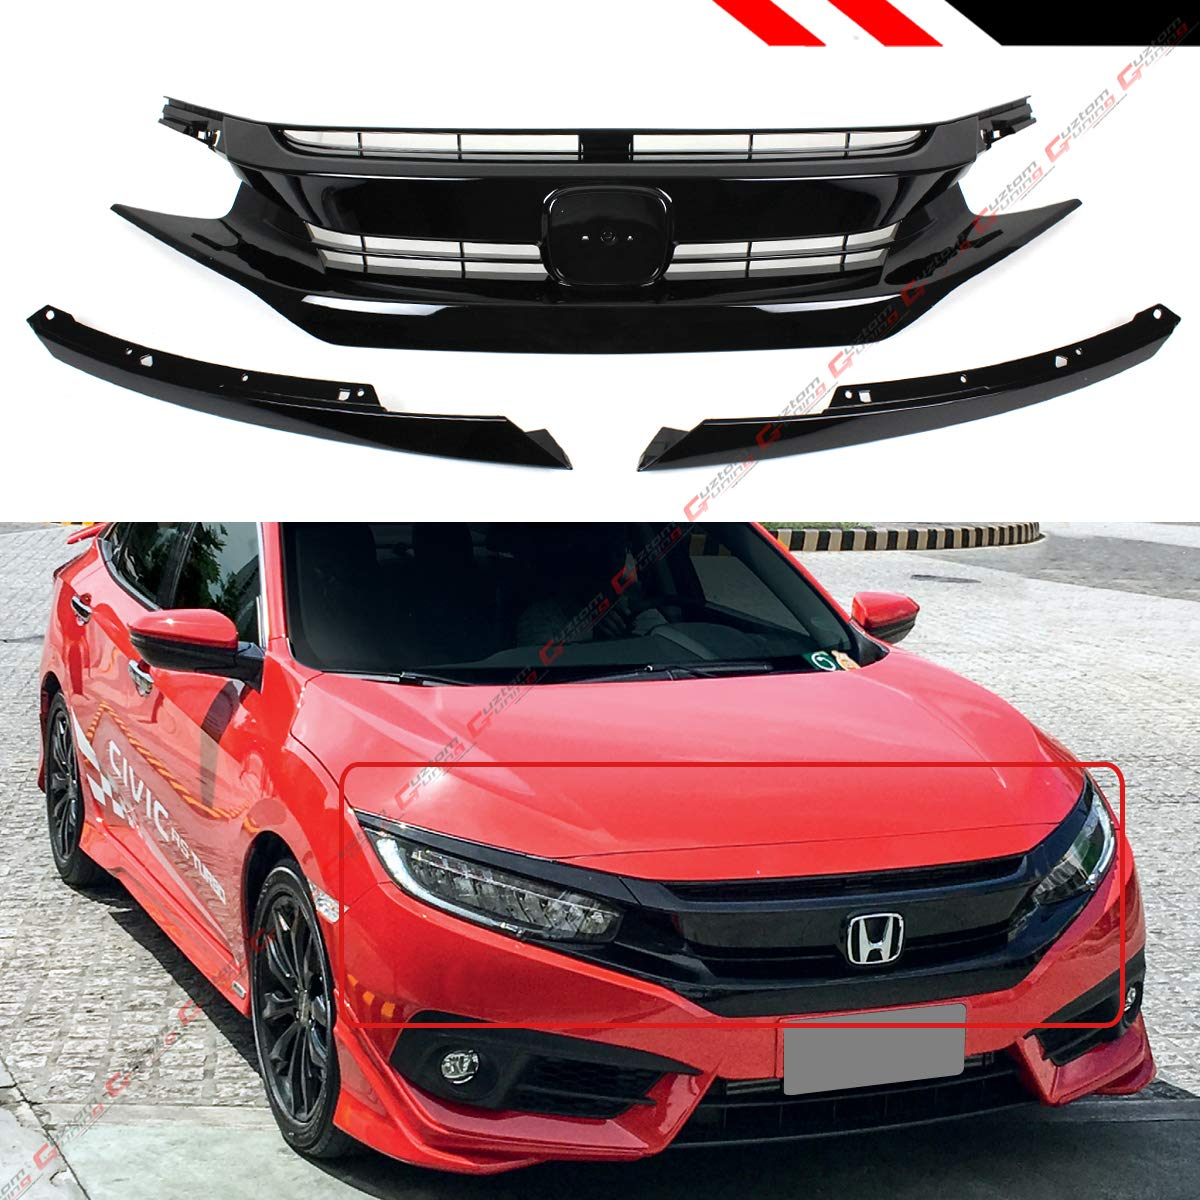 Honda Civic 10Th Gen >> Fits For 2016 2019 Honda Civic 10th Gen Jdm Si Rs Style Black Front Hood Grill Grille Eye Lid Replacement